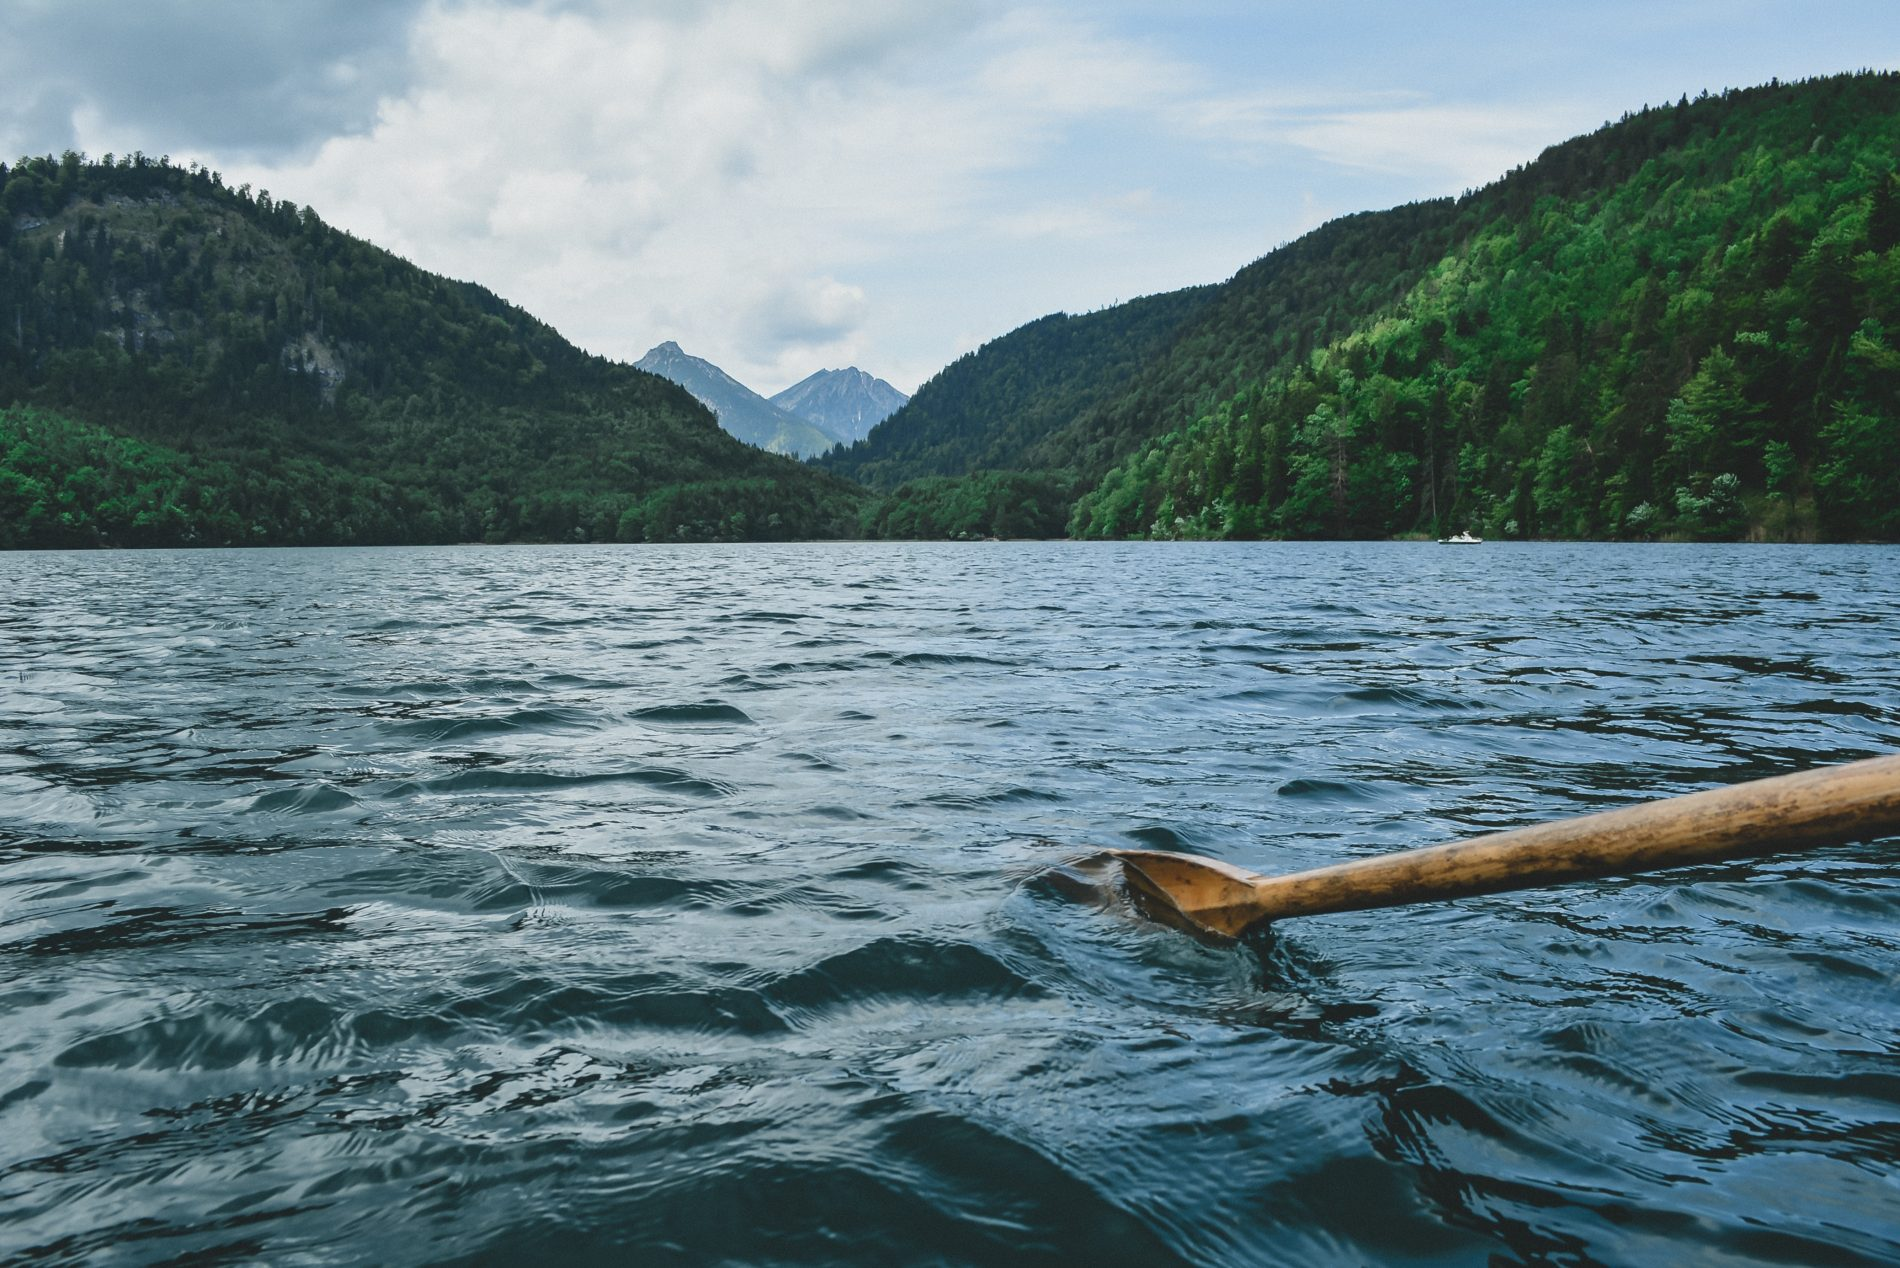 The Coxswain Effect: How to Put Power in Every Stroke When You Can't See Where You're Going